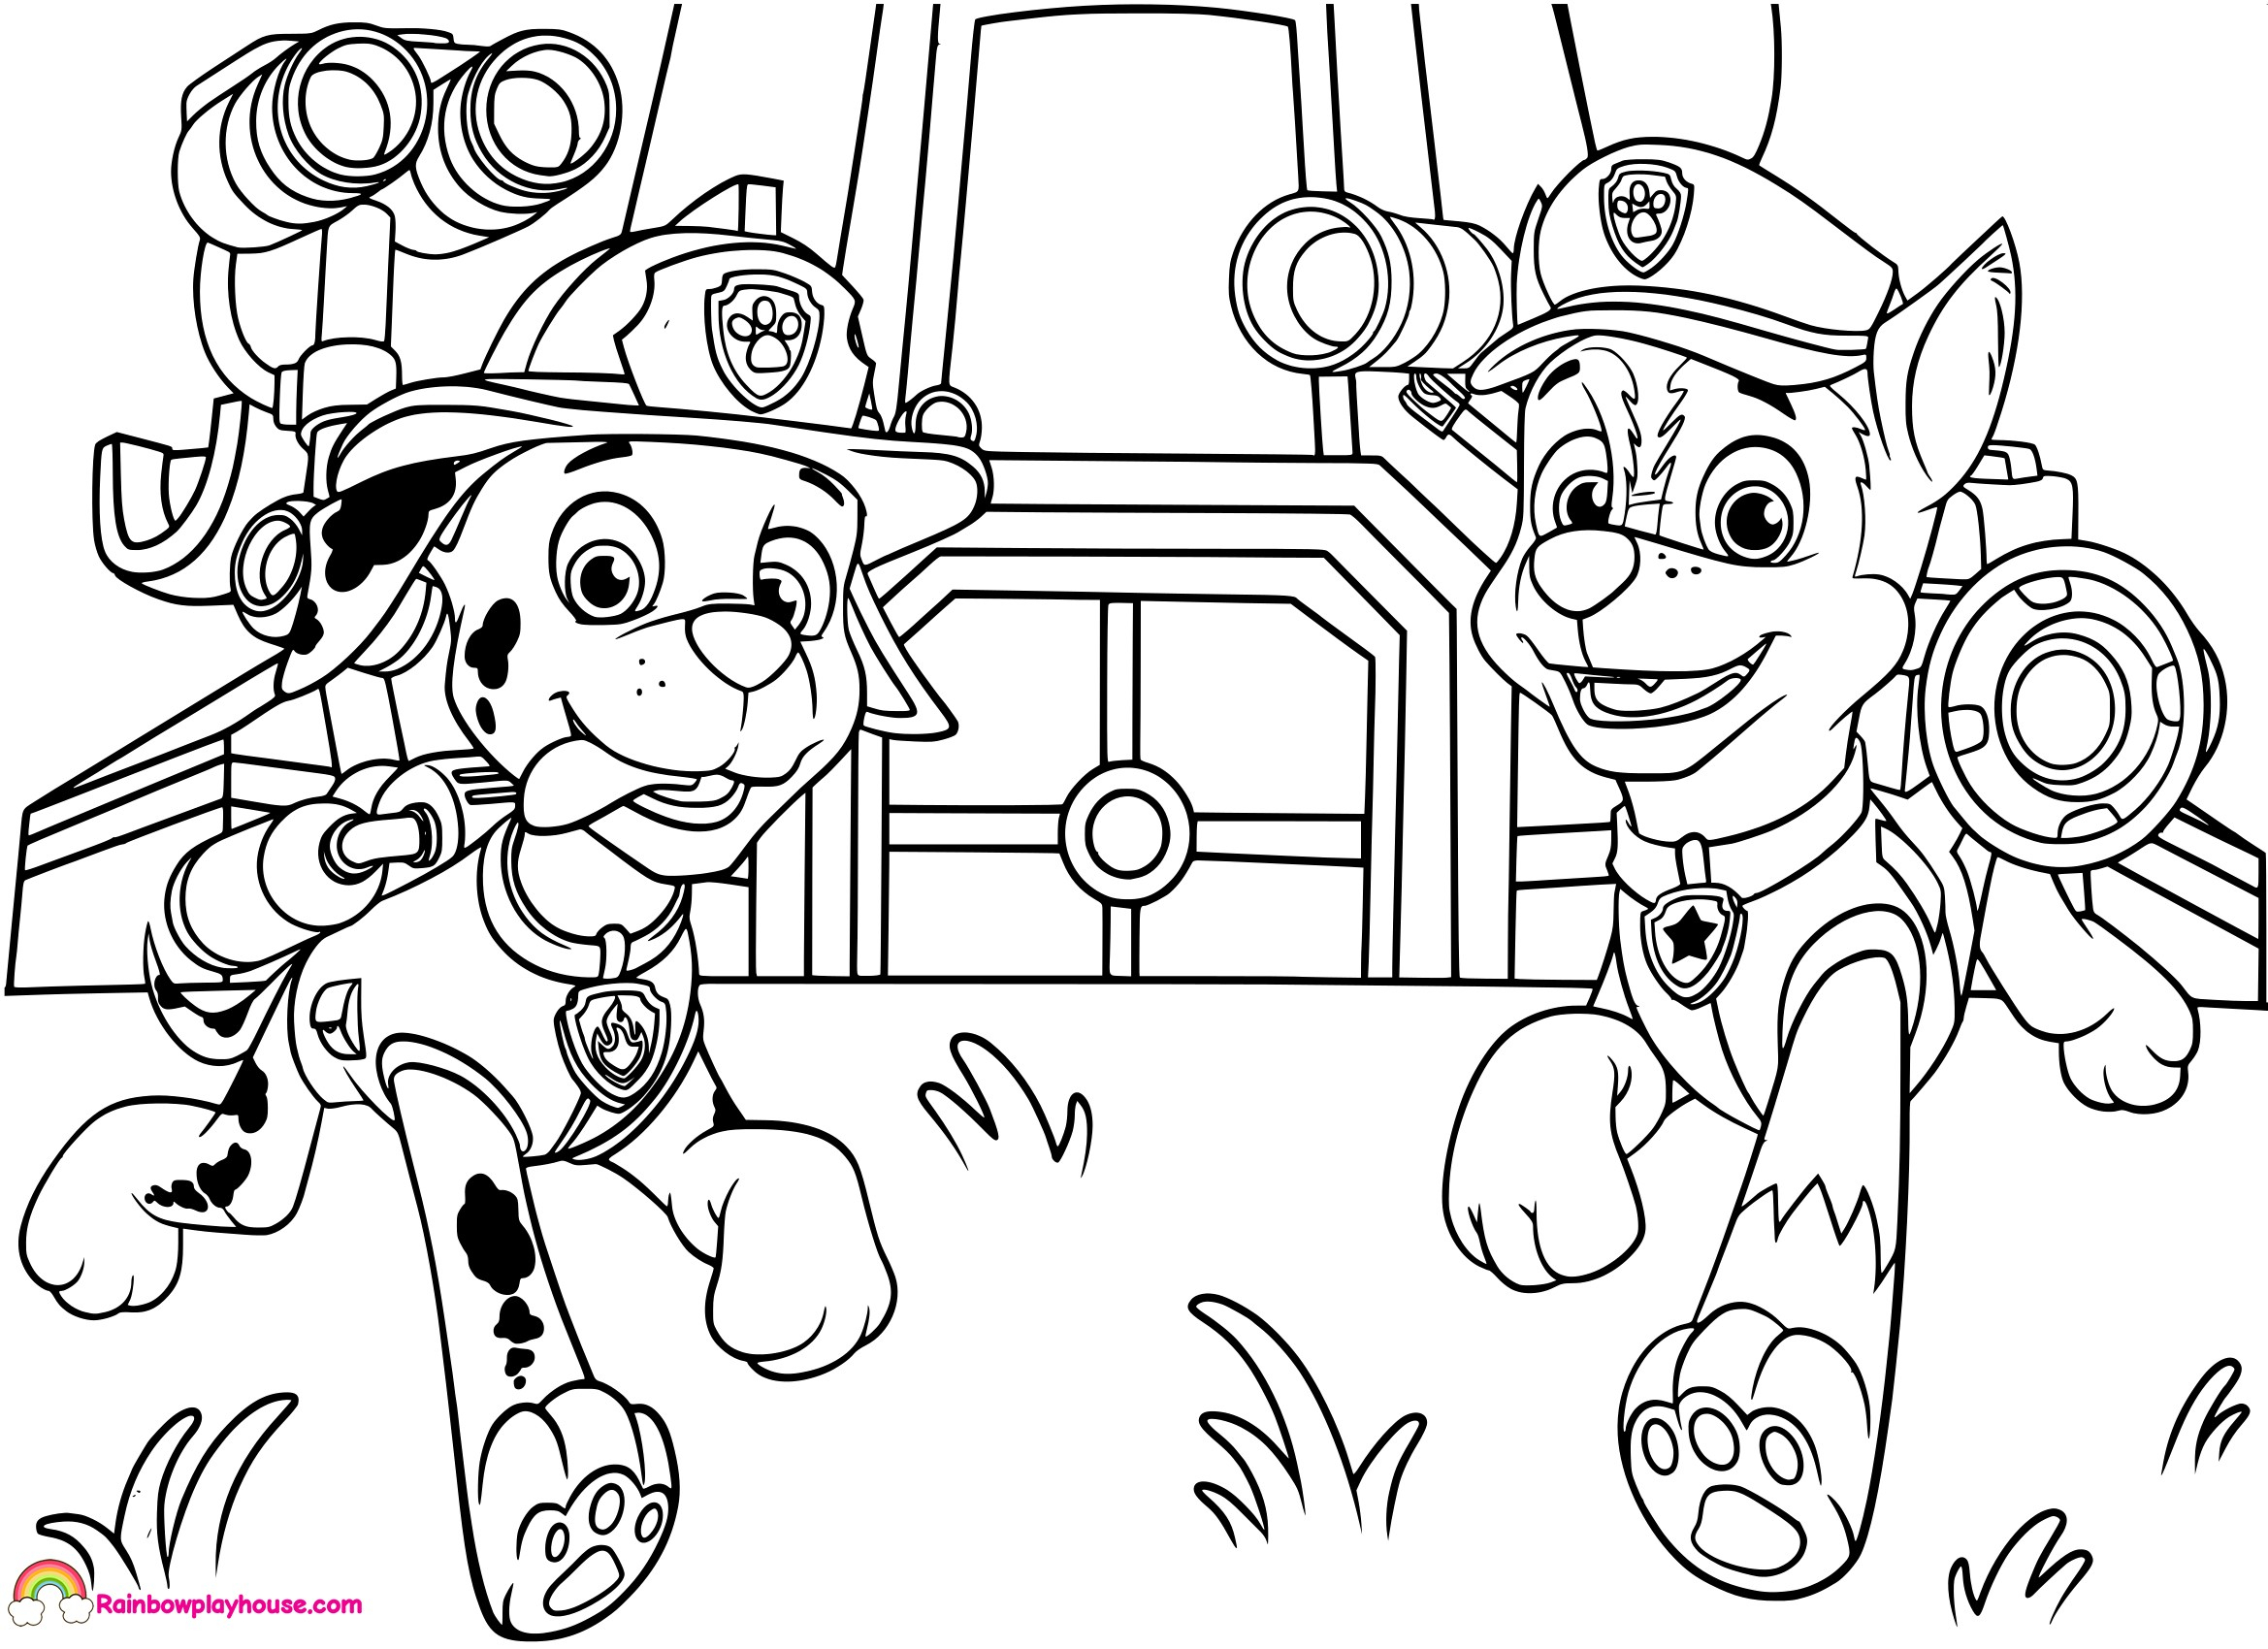 chase paw patrol coloring pages  coloring home